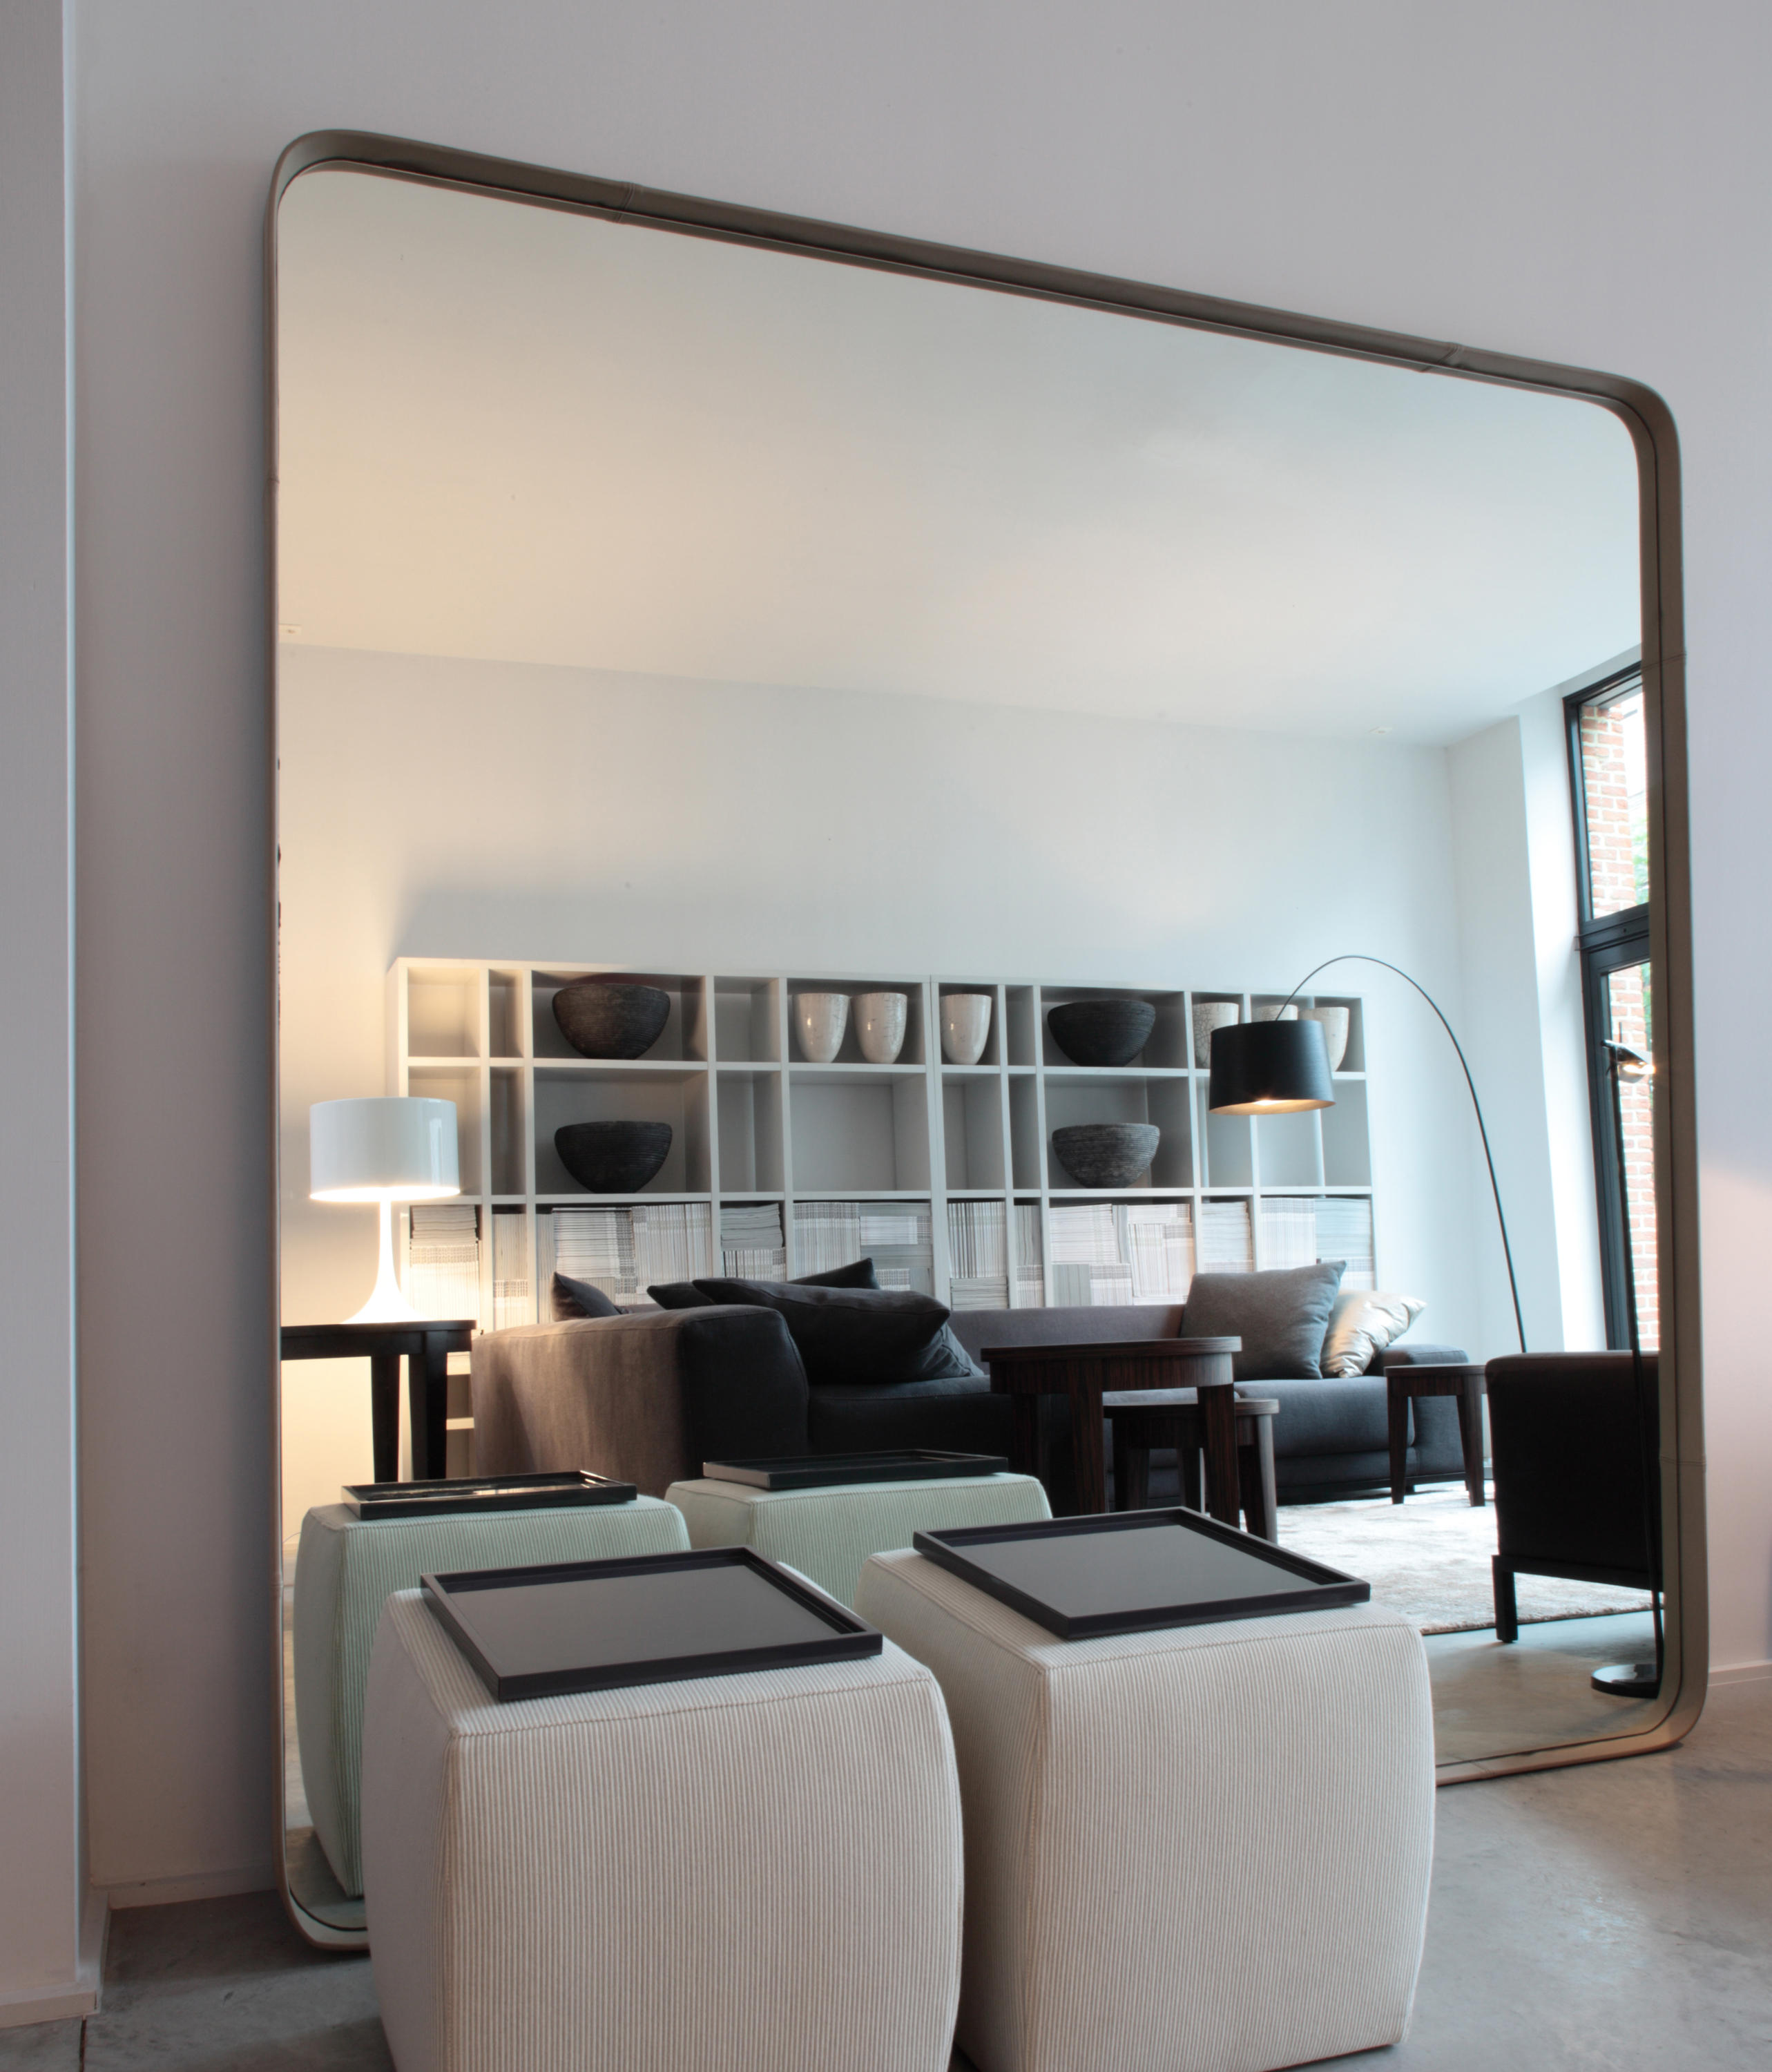 birk mirror mirrors from meridiani architonic. Black Bedroom Furniture Sets. Home Design Ideas